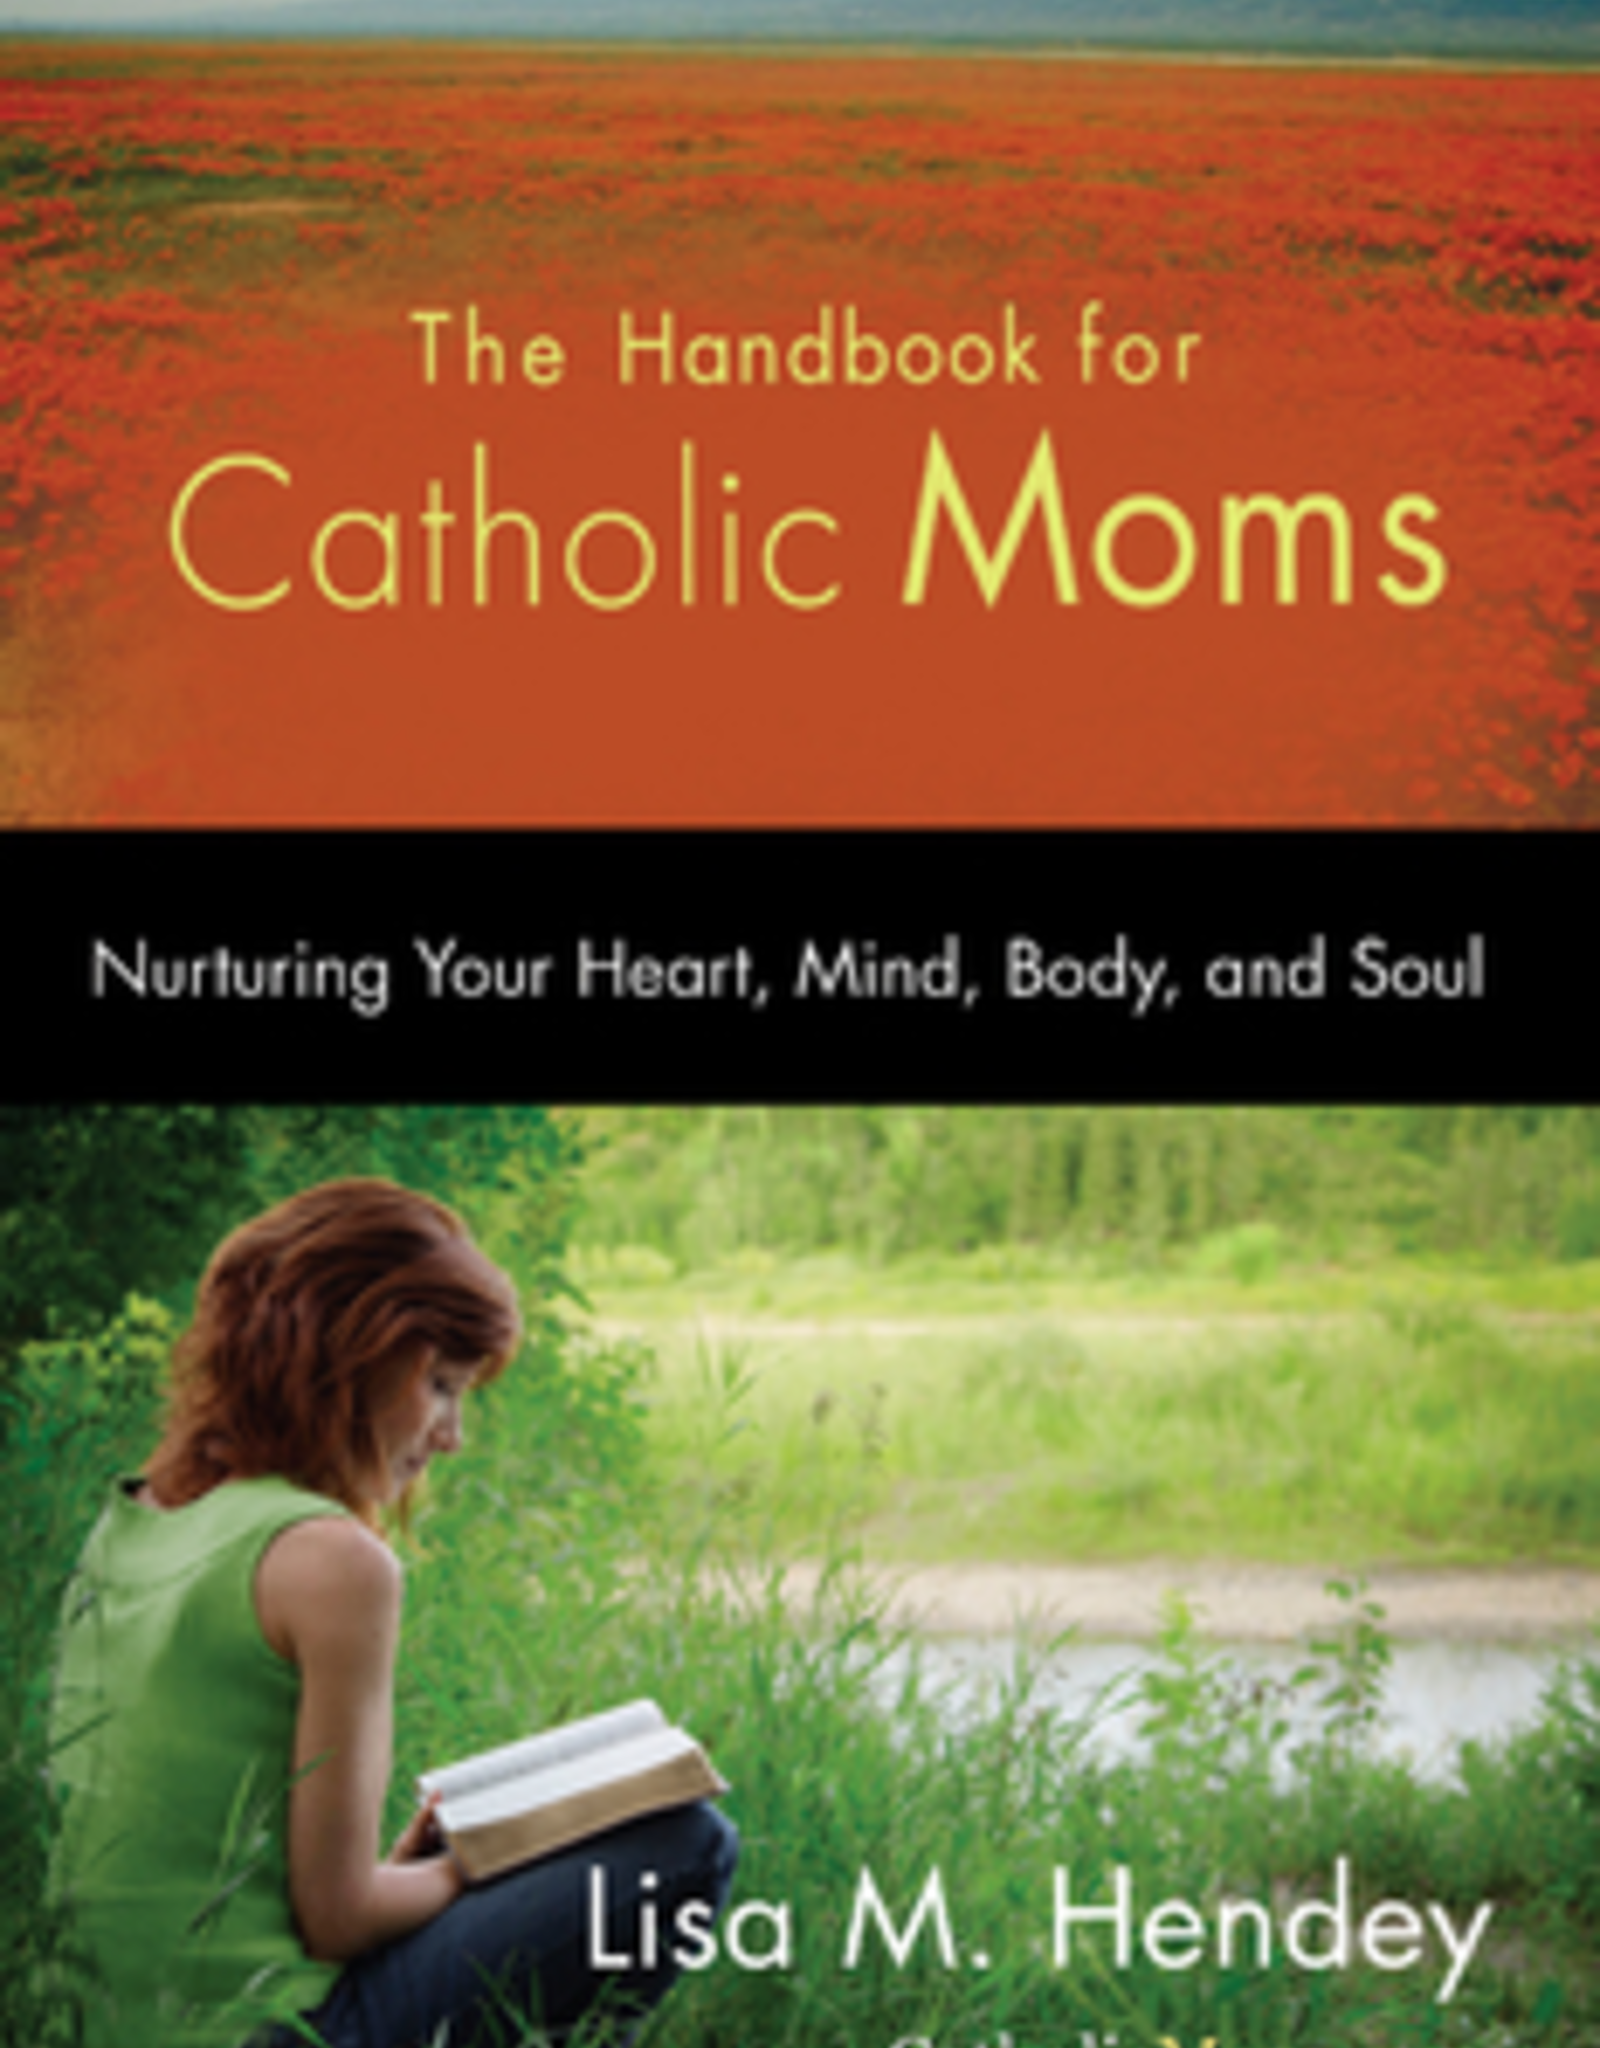 Ave Maria Press The Handbook for Catholic Moms:  Nurturing Your Heart, Mind, Body and Soul, by Lisa M. Hendey (paperback)